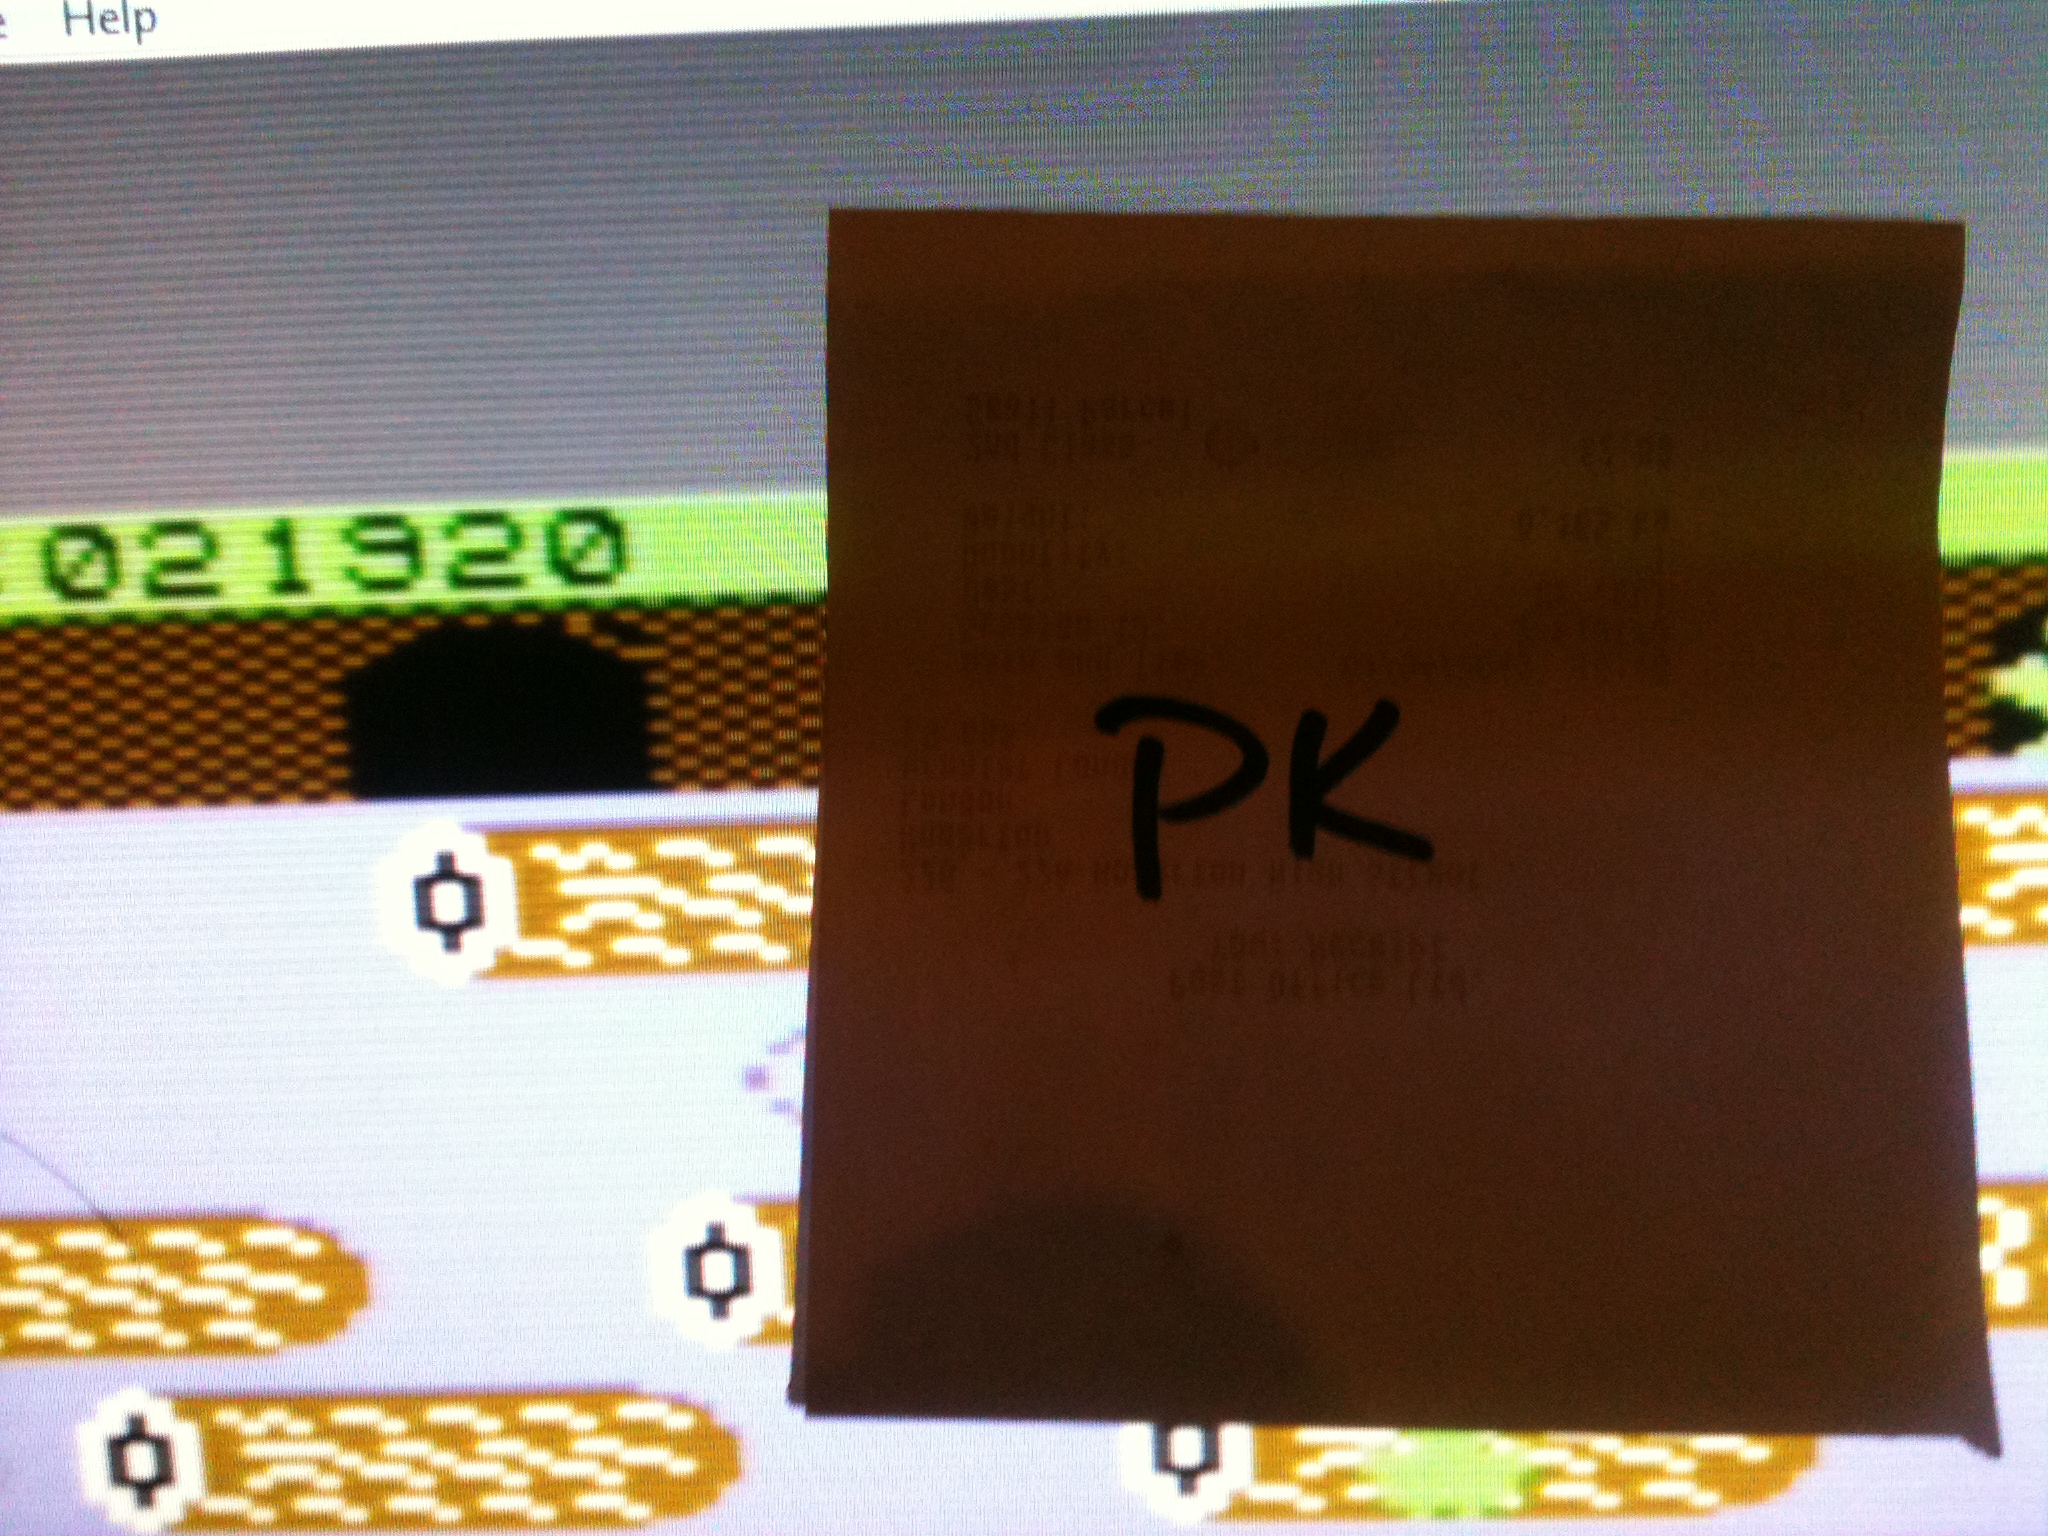 kernzy: Frogger: Sierra (Commodore 64 Emulated) 21,920 points on 2015-09-21 19:26:08